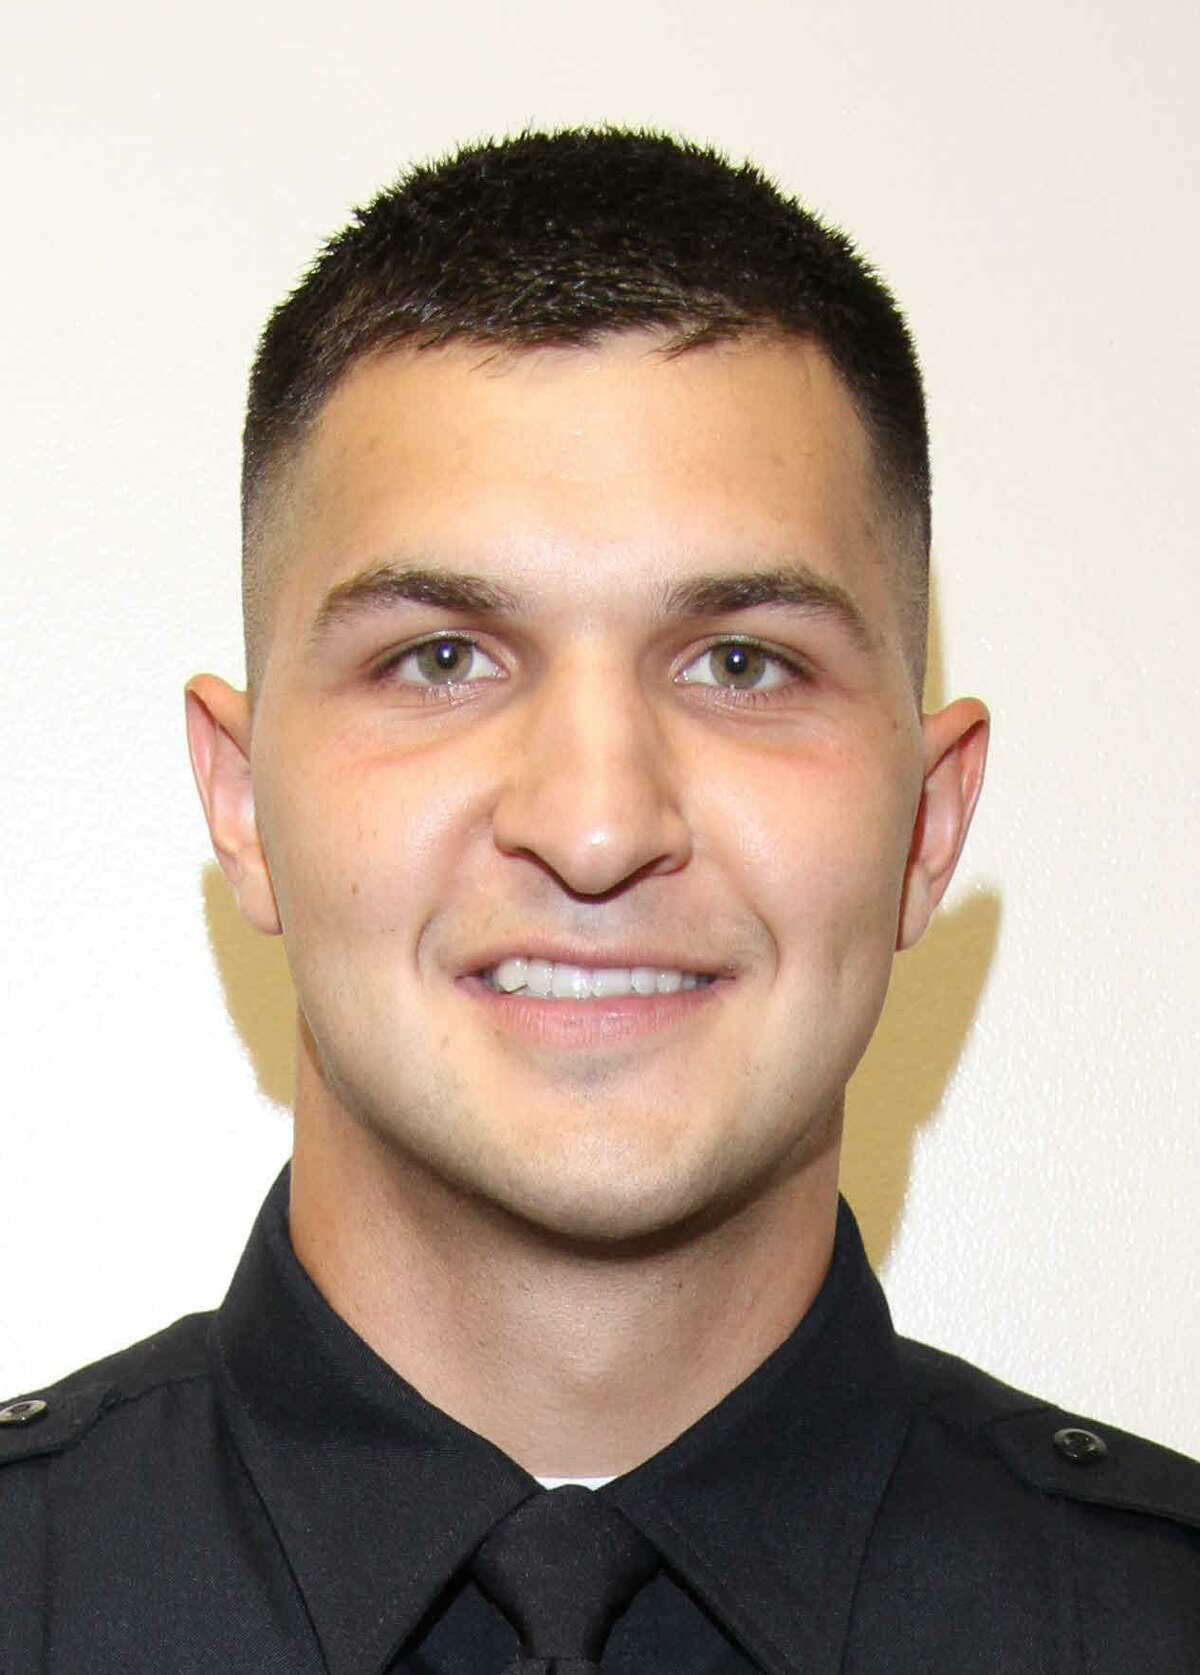 Officer Thomas H. Villarreal was fired in July after police say he used excessive force in punching a suspect who had fled on foot after a traffic stop.